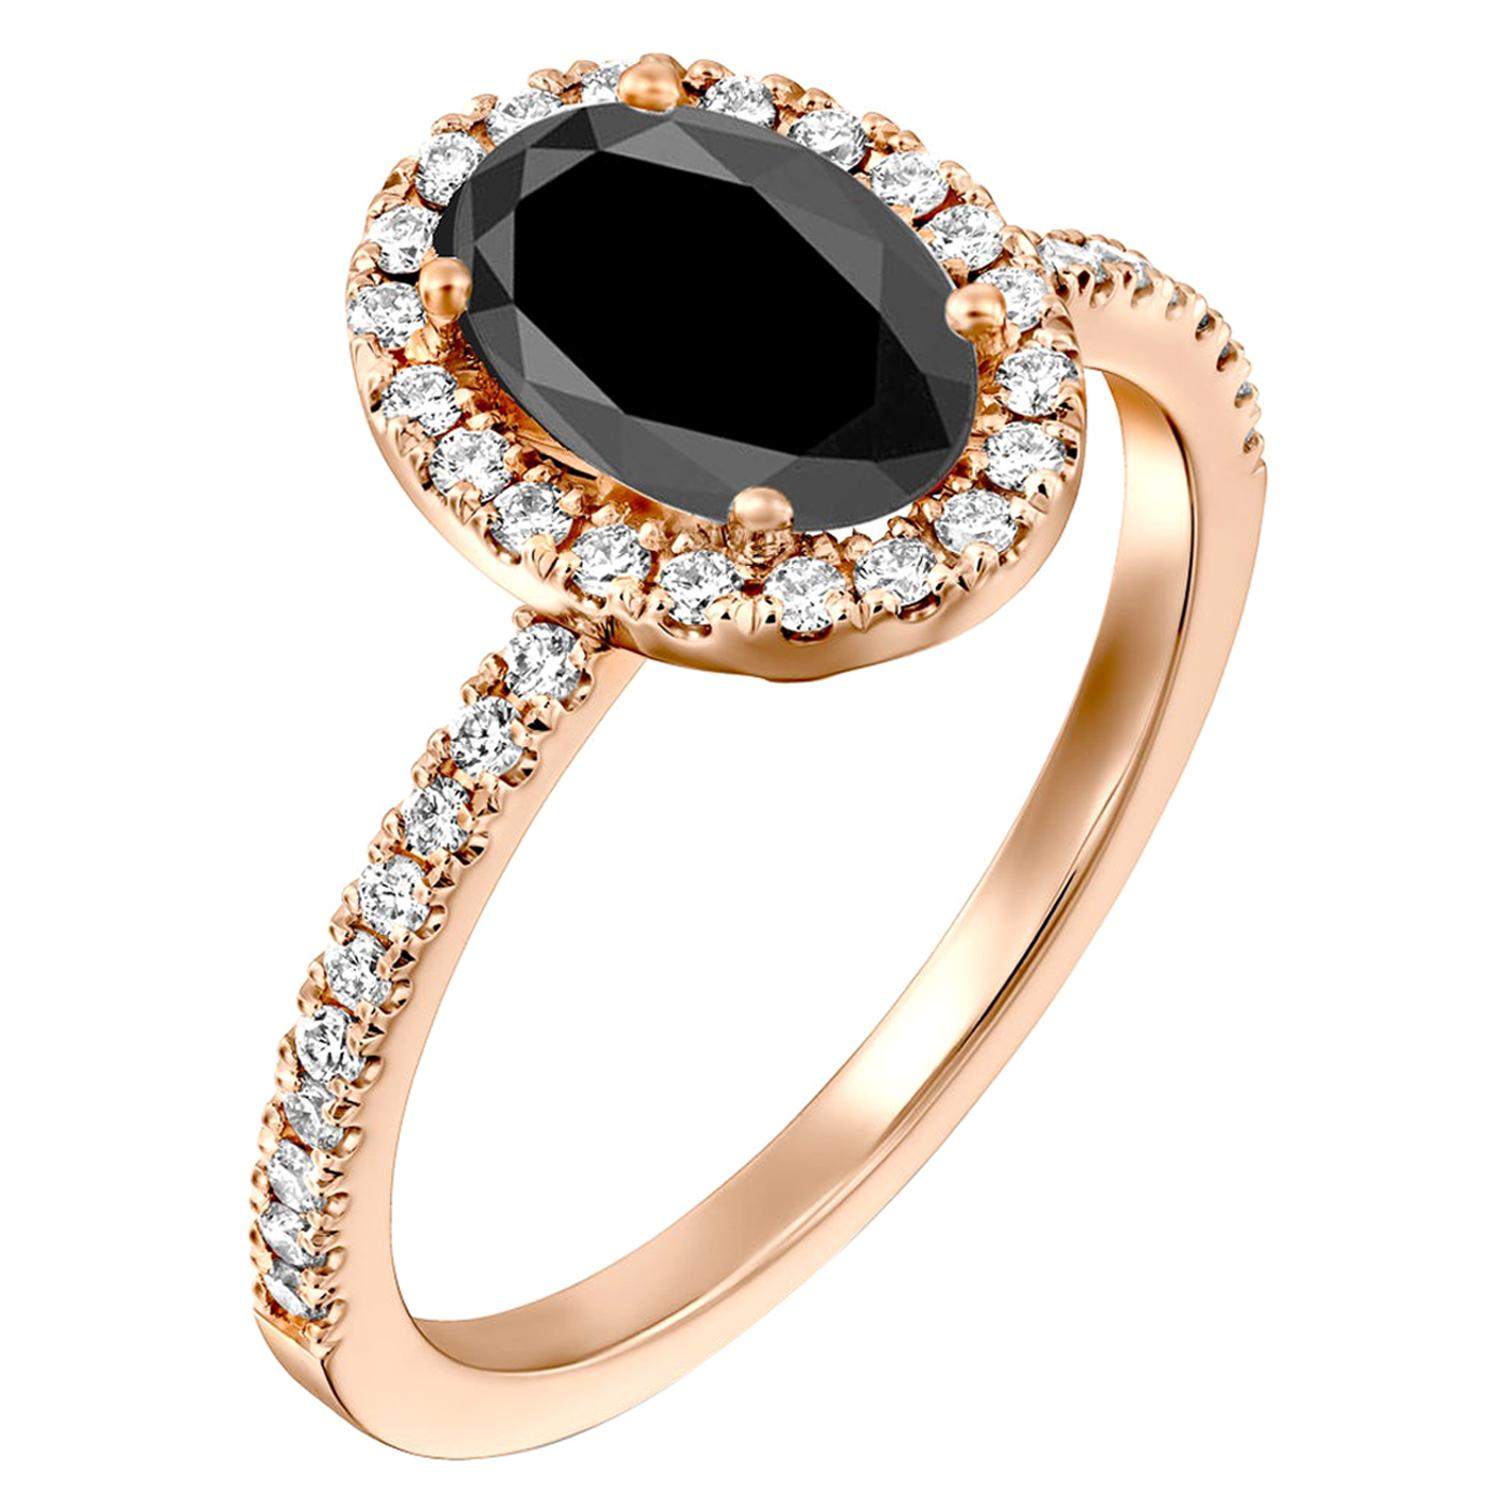 2 Carat 14 Karat Rose Gold Certified Oval Black Diamond Engagement Ring